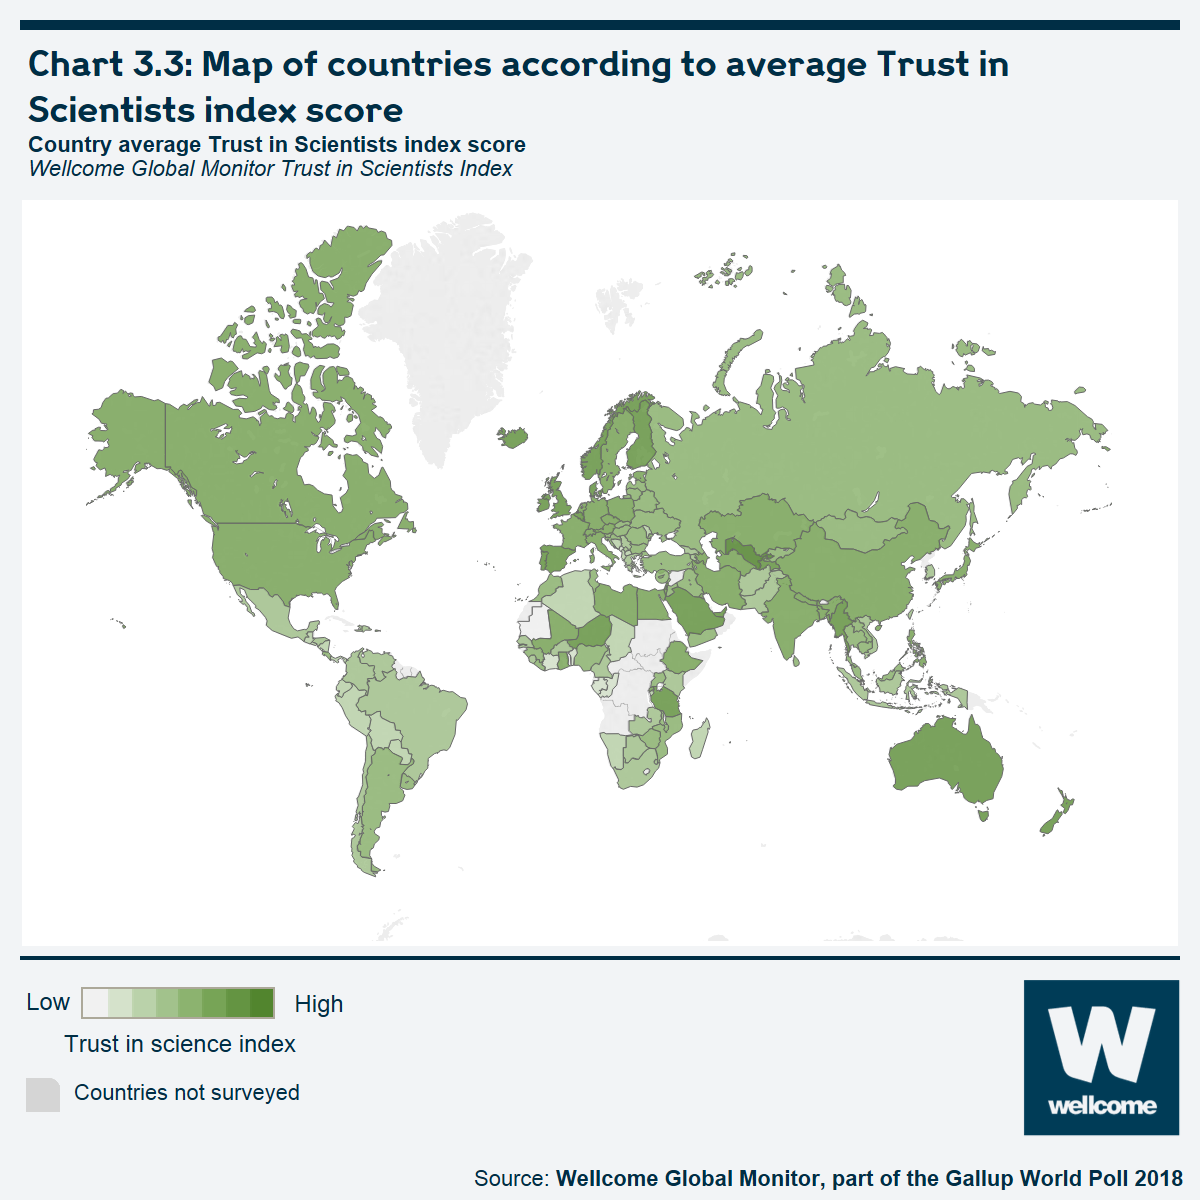 Chart 3.3 Map of countries according to average Trust in Scientists Index score